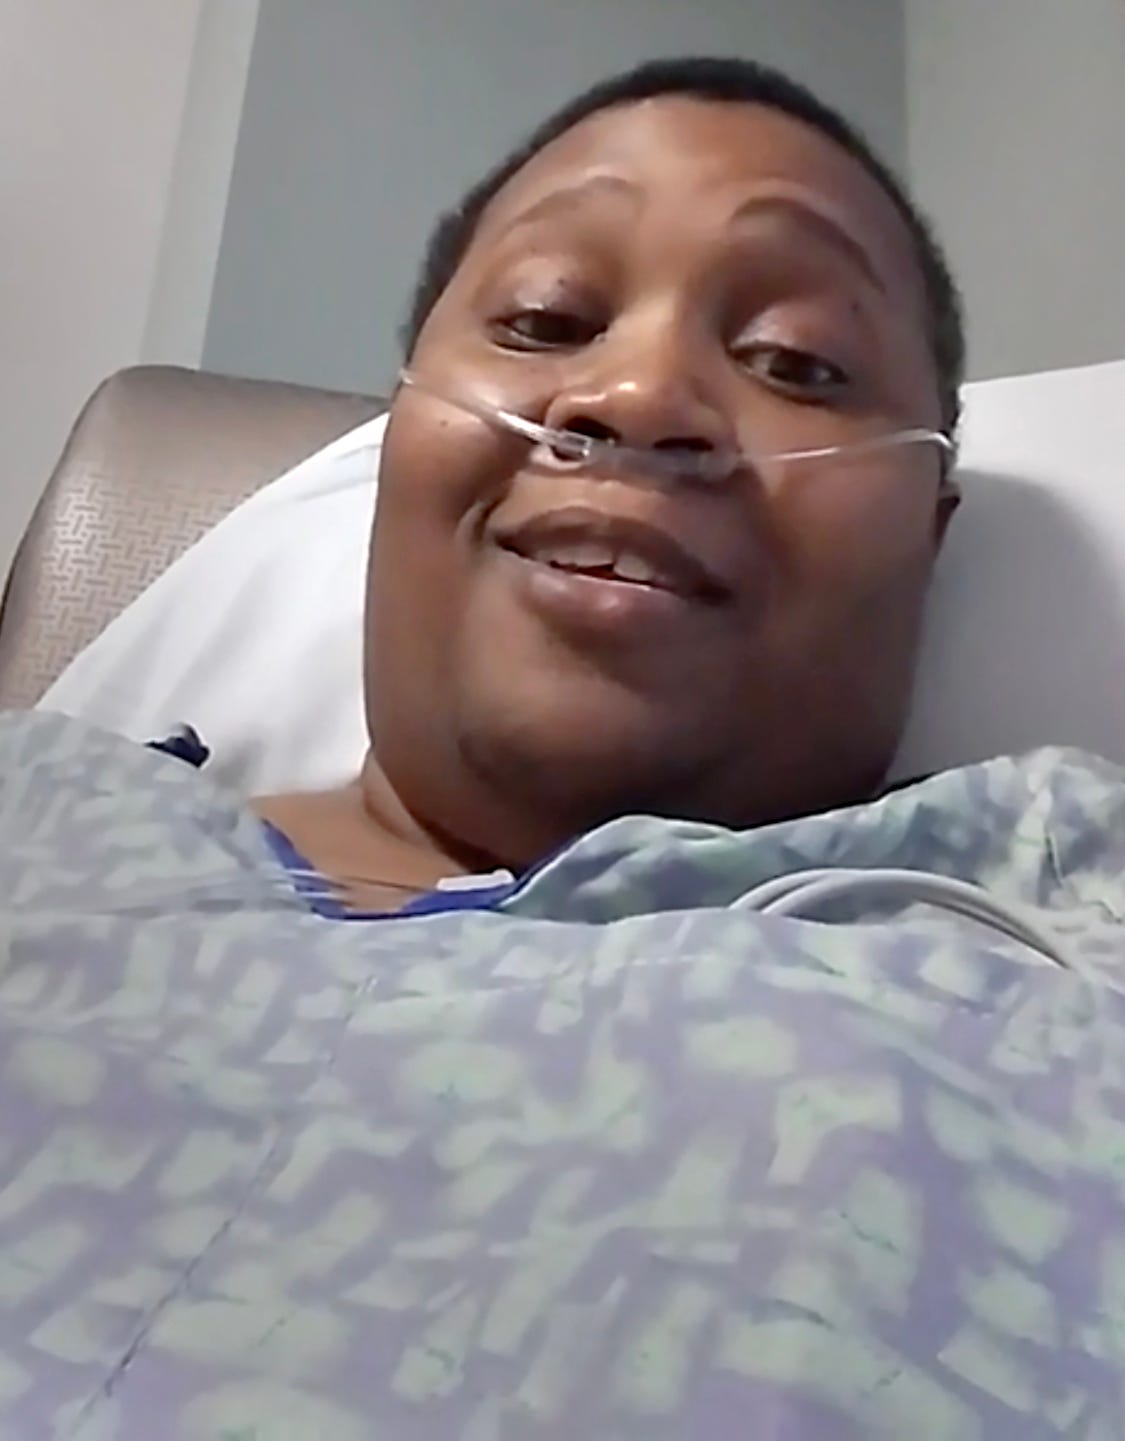 Monique Baldridge, 52, of Detroit, records herself in a Facebook Live dispatch to family and friends on March 20, 2020 from her bed at Ascension St. John Hospital in Detroit. She died with COVID-19 on March 27, 2020.